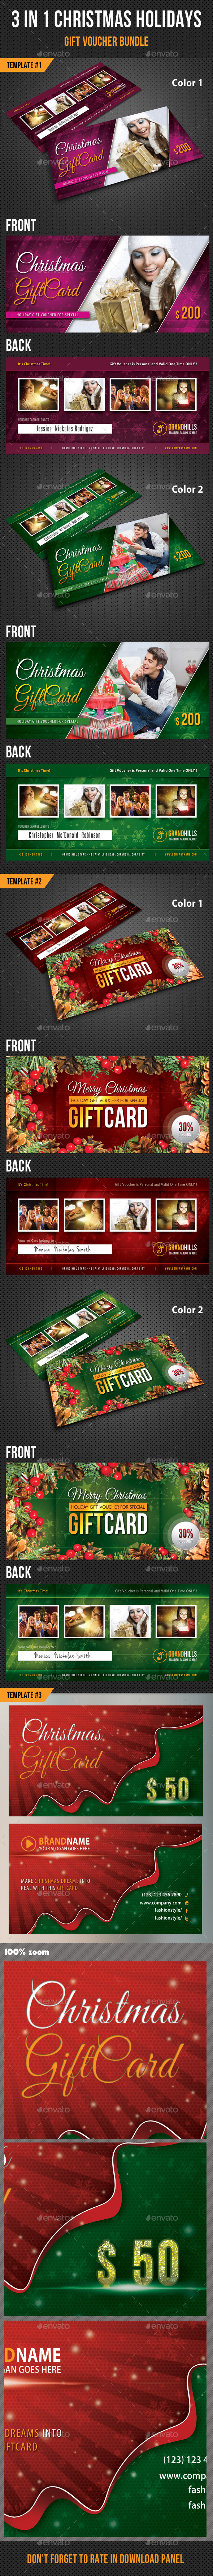 GraphicRiver 3 in 1 Christmas Holidays Gift Voucher Bundle 9871211